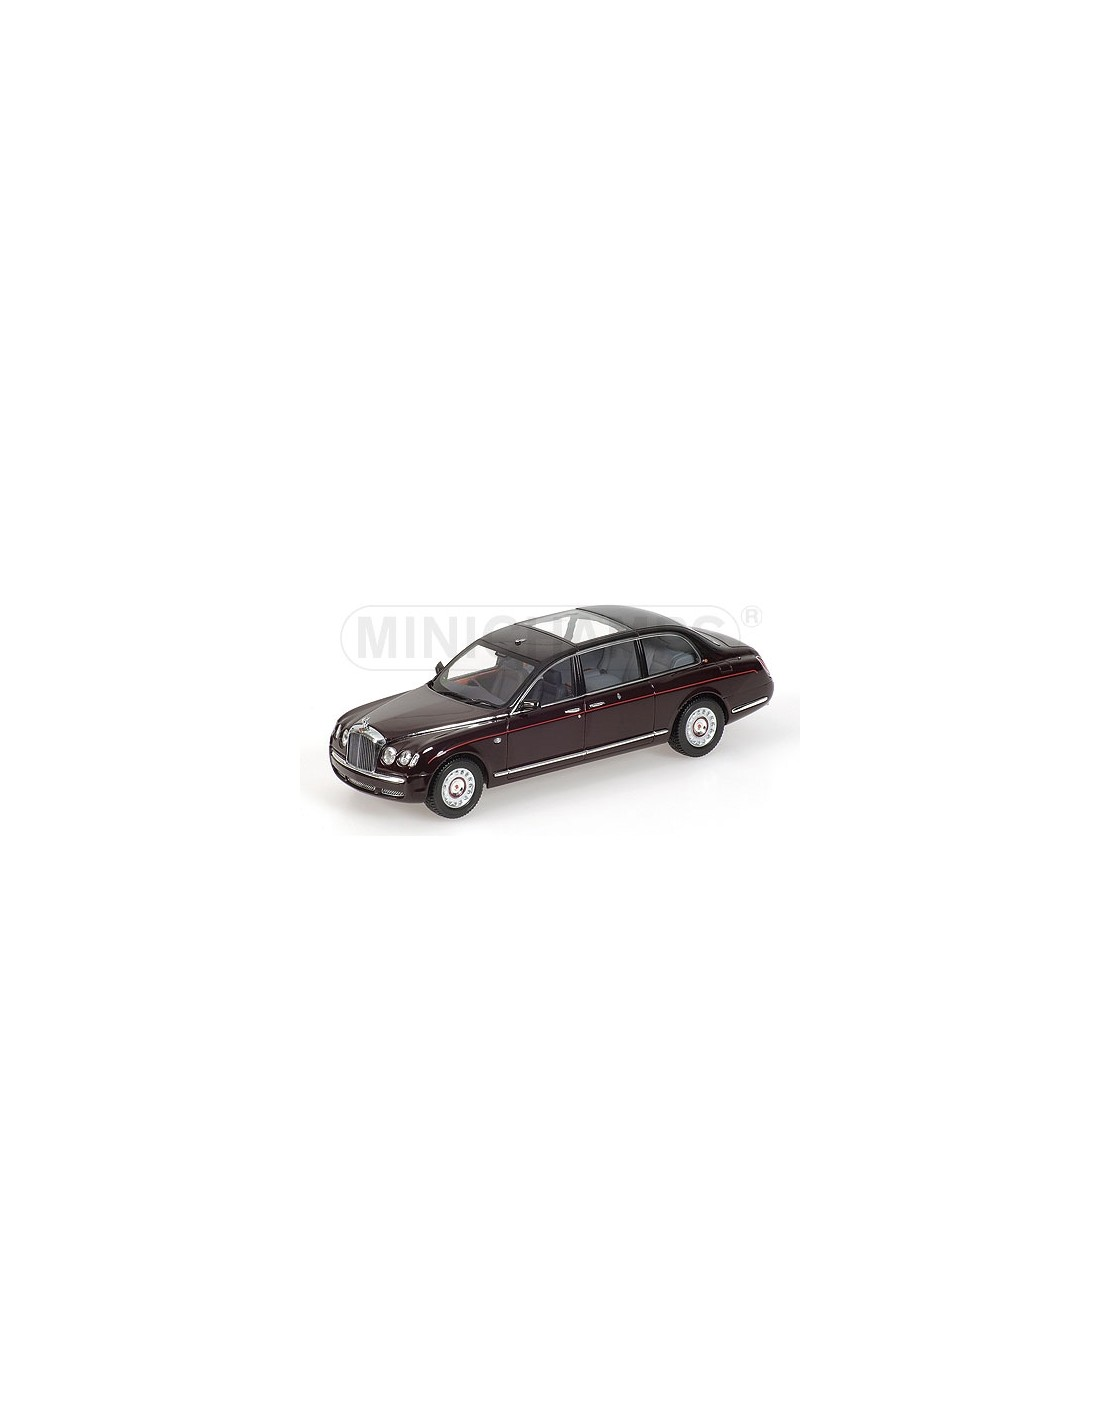 MINICHAMPS BENTLEY STATE LIMOUSINE